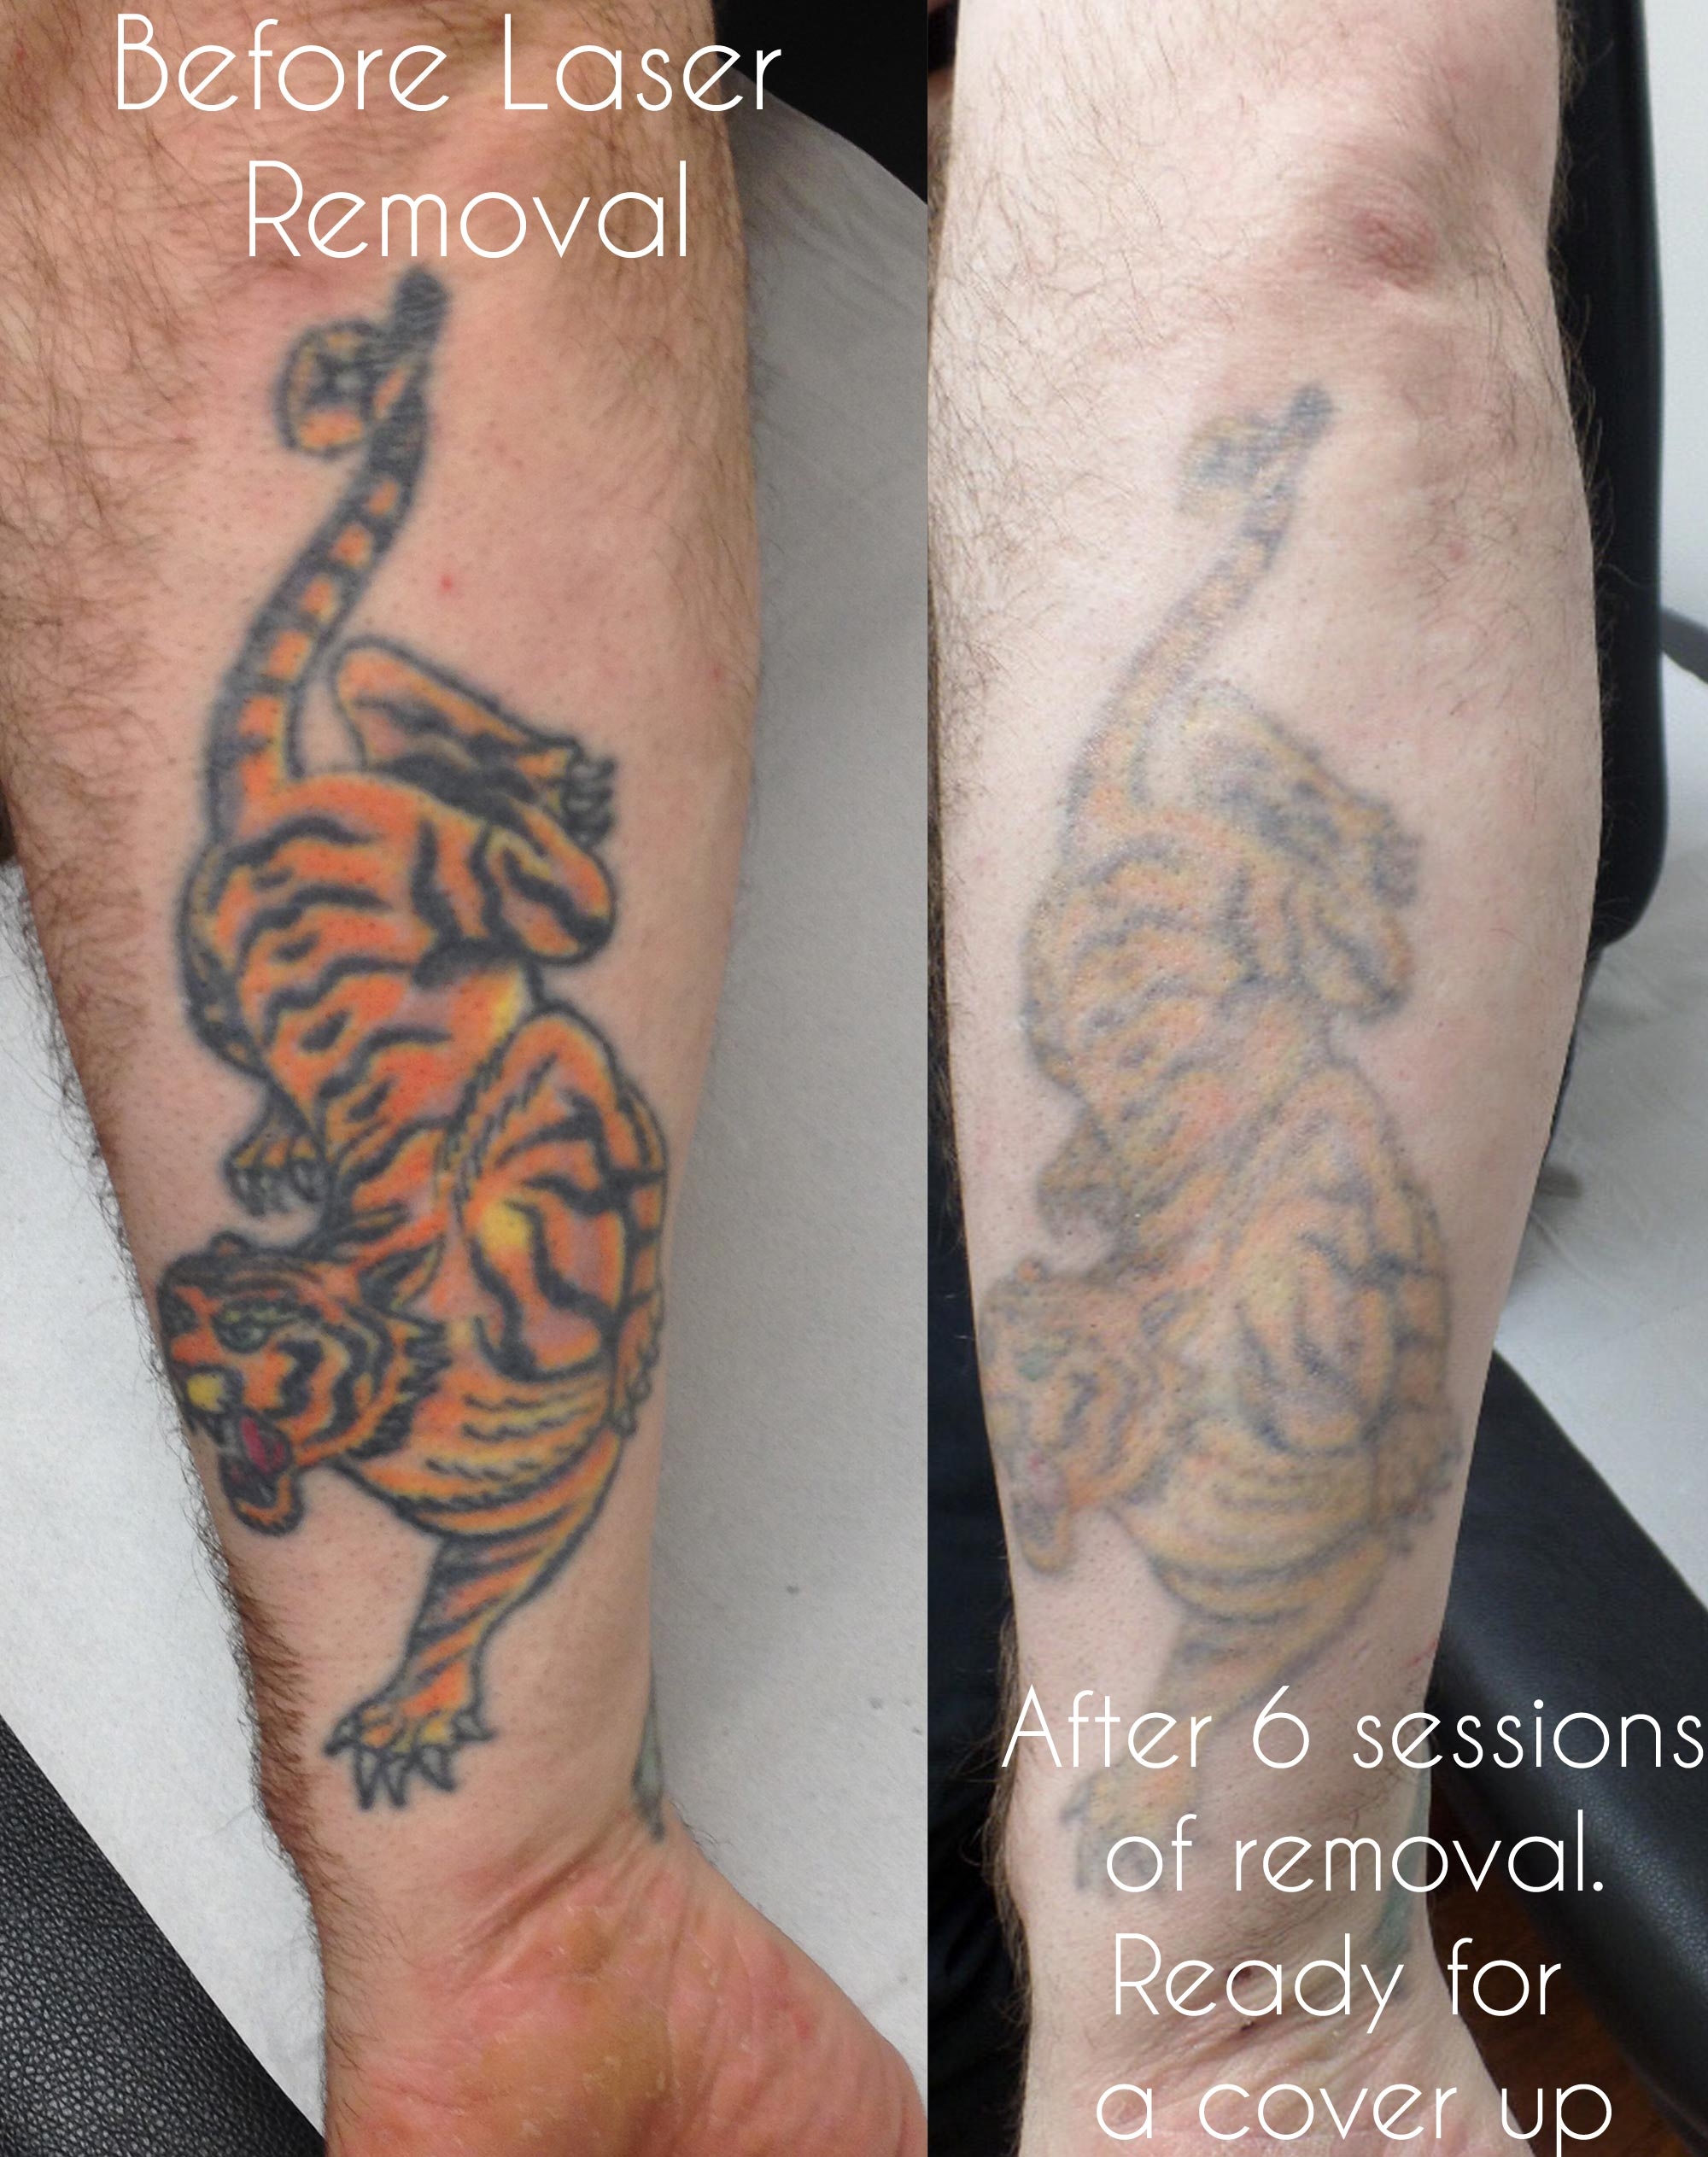 Laser tattoo removal - Birmingham UK. - Modern Body Art